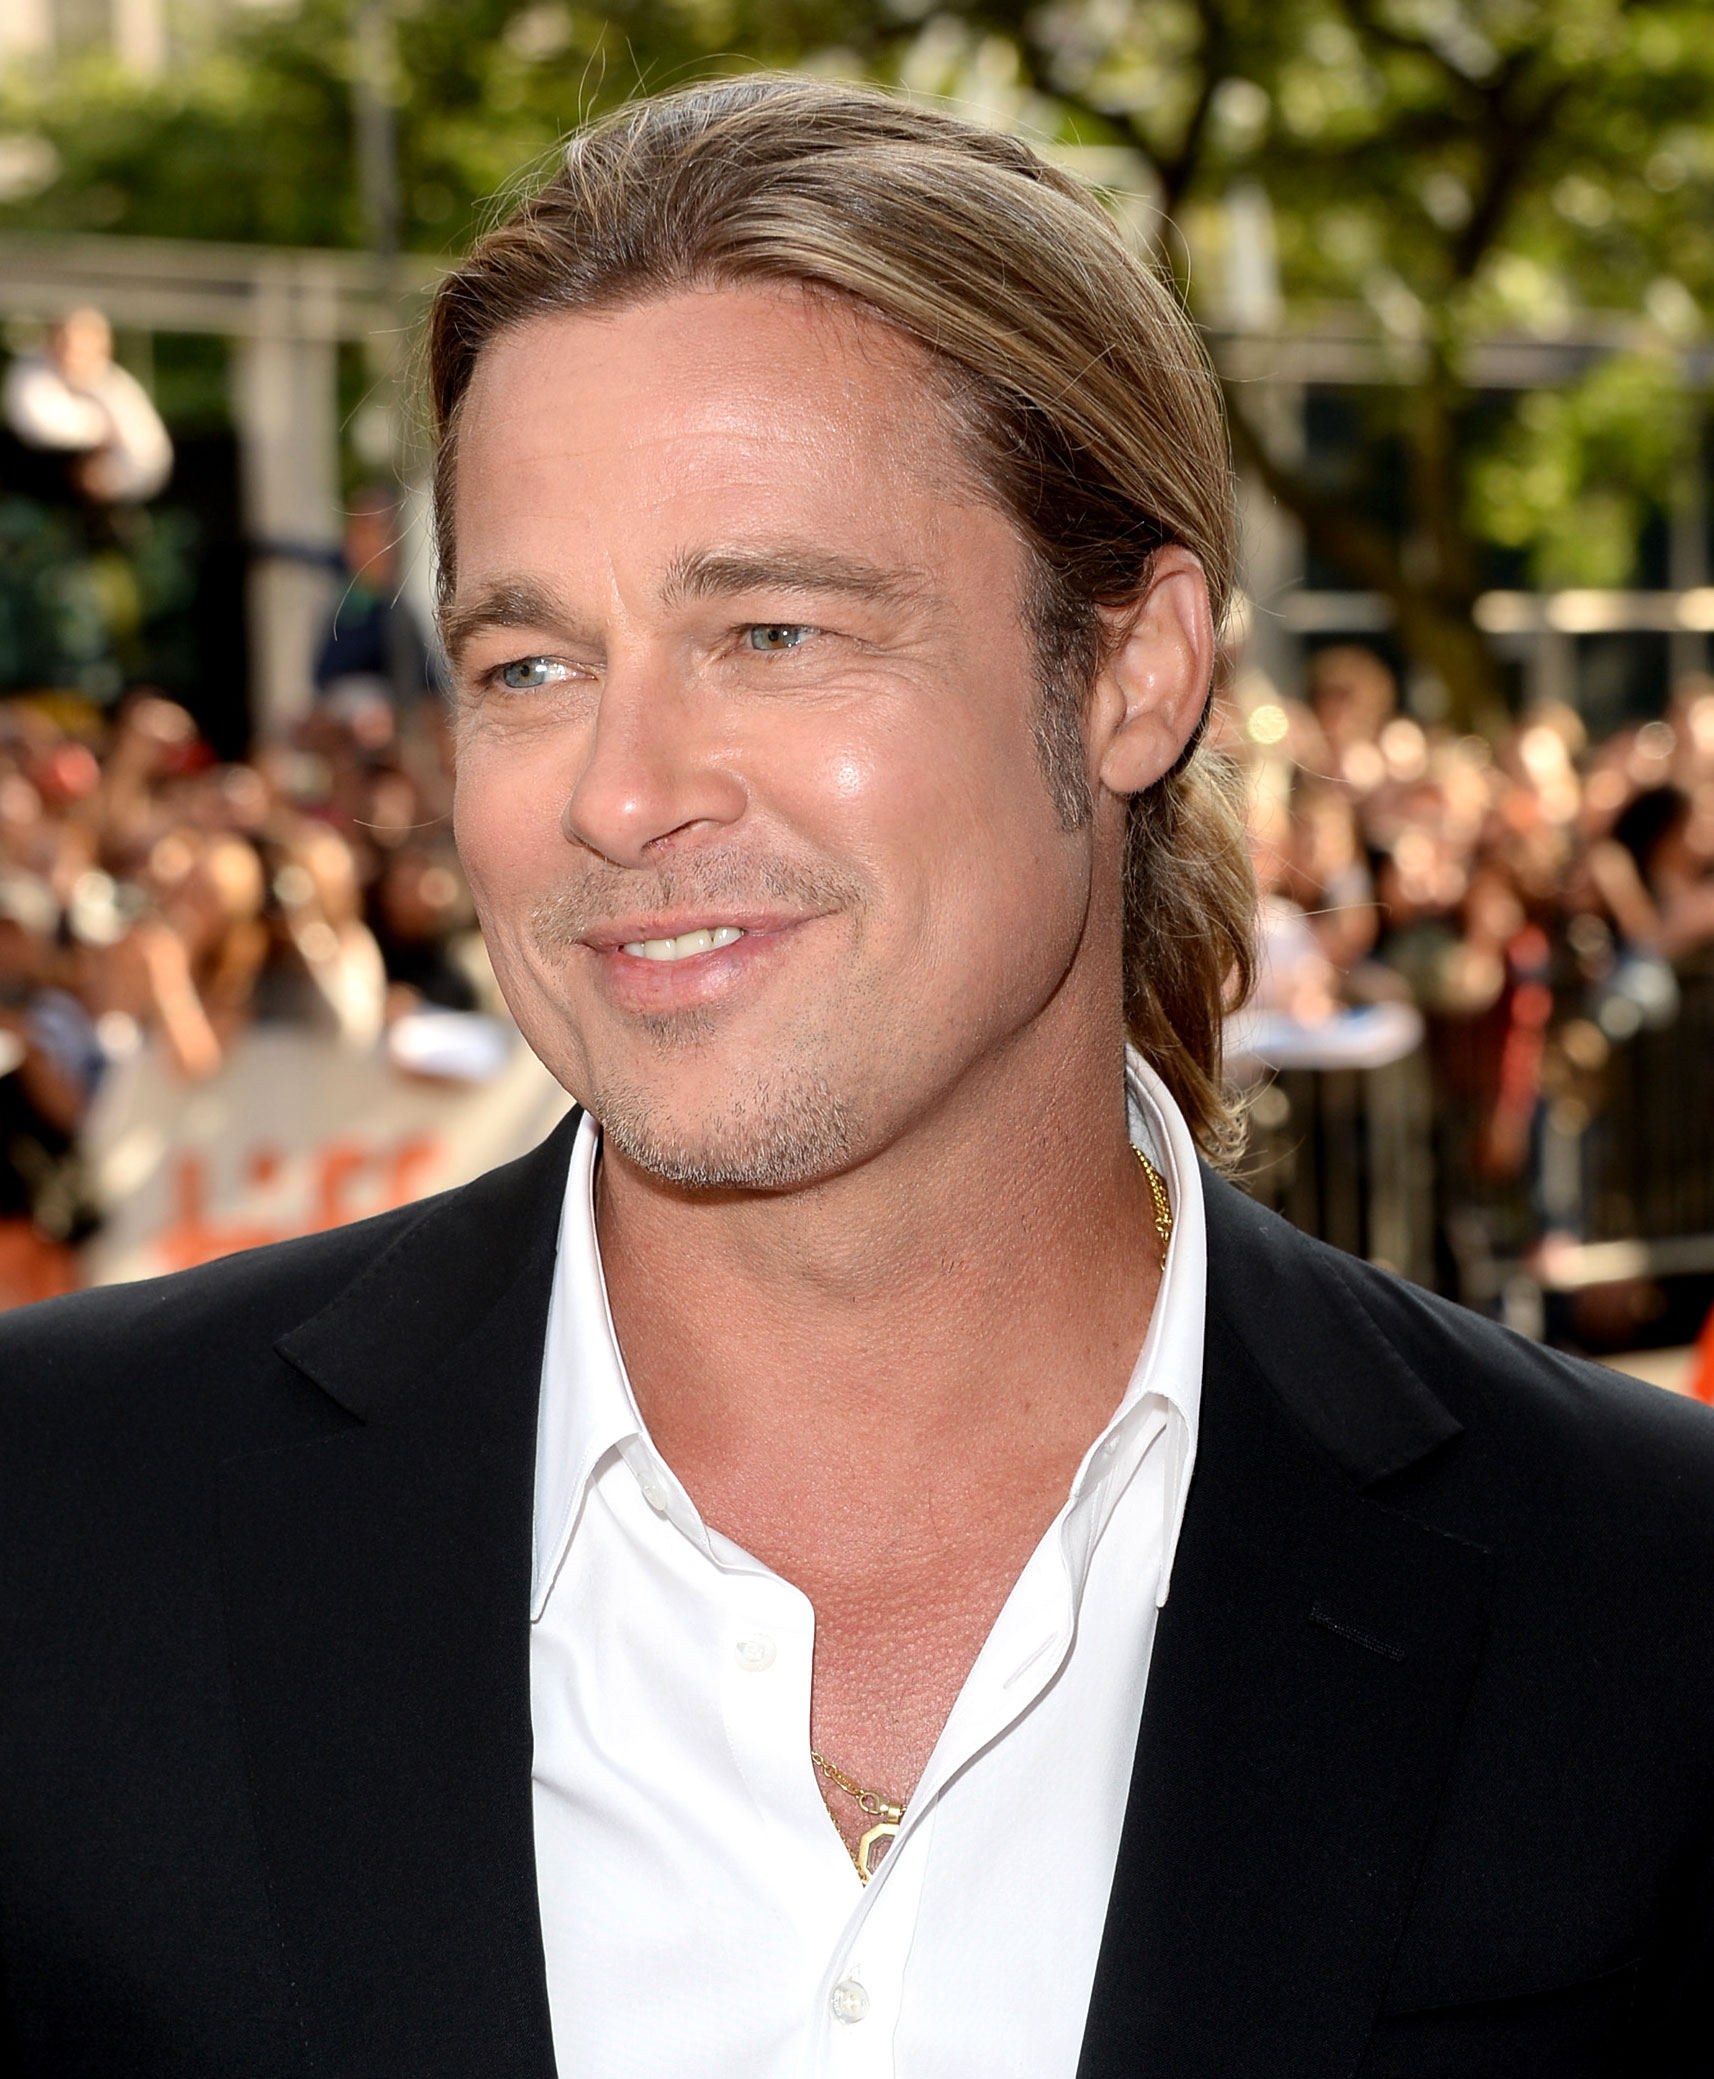 brad-pitt-pony tail hair - Yes, that is the traces of a man bun you see. The 12 Years a Slave star rocked the trendy updo at the 2013 Toronto International Film Festival.